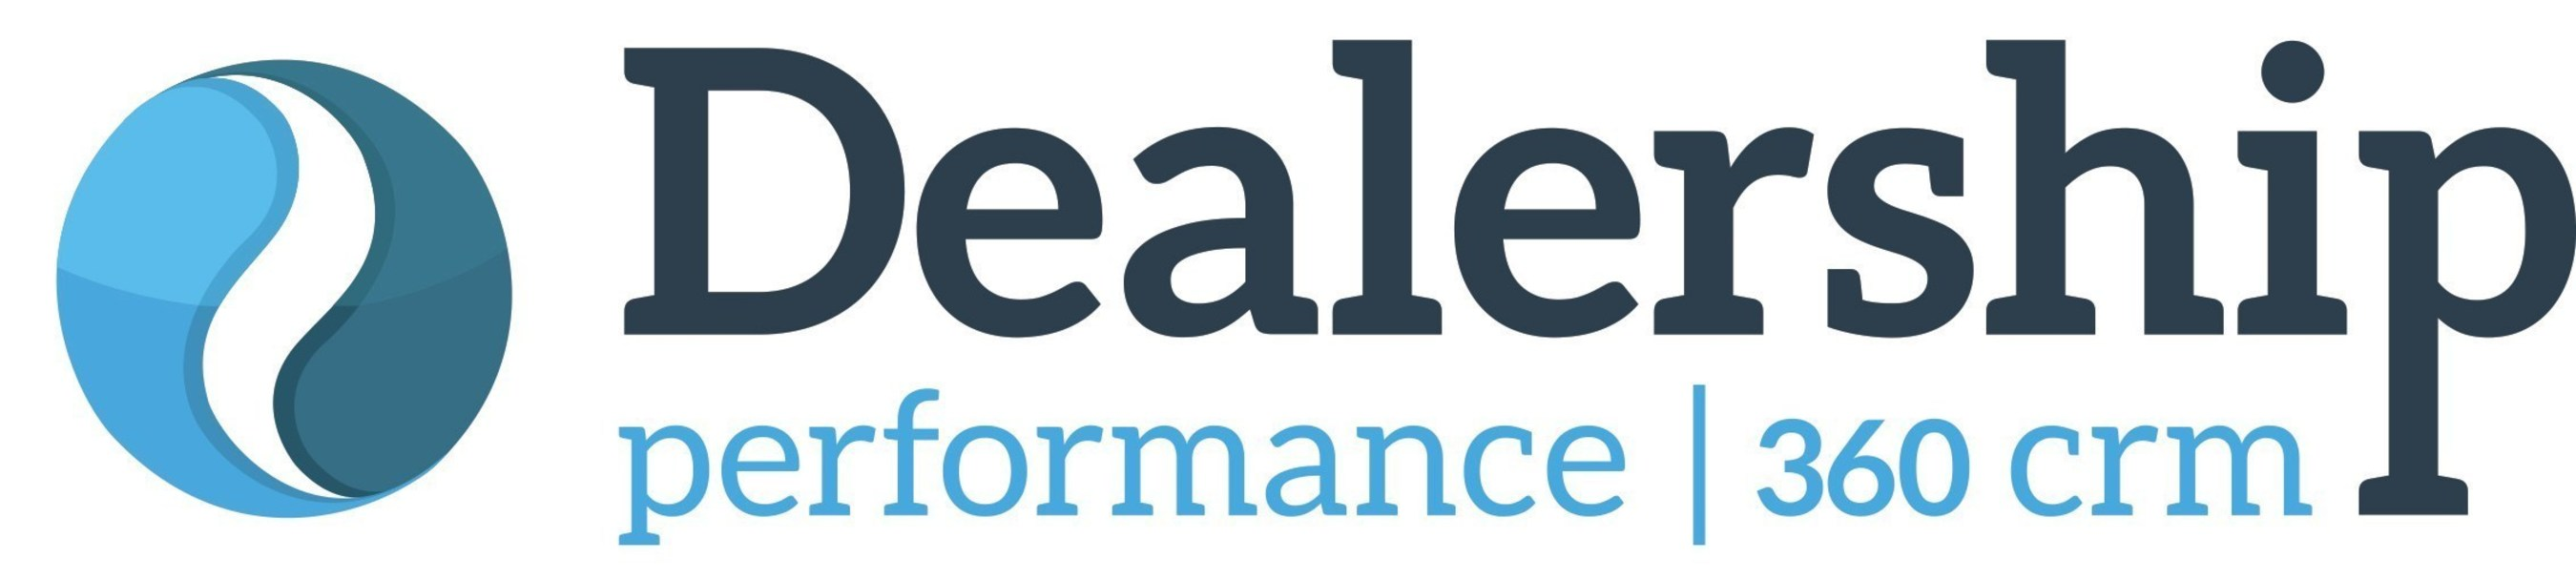 7-Store Truck Dealership Powerhouse Partners with Dealership Performance CRM